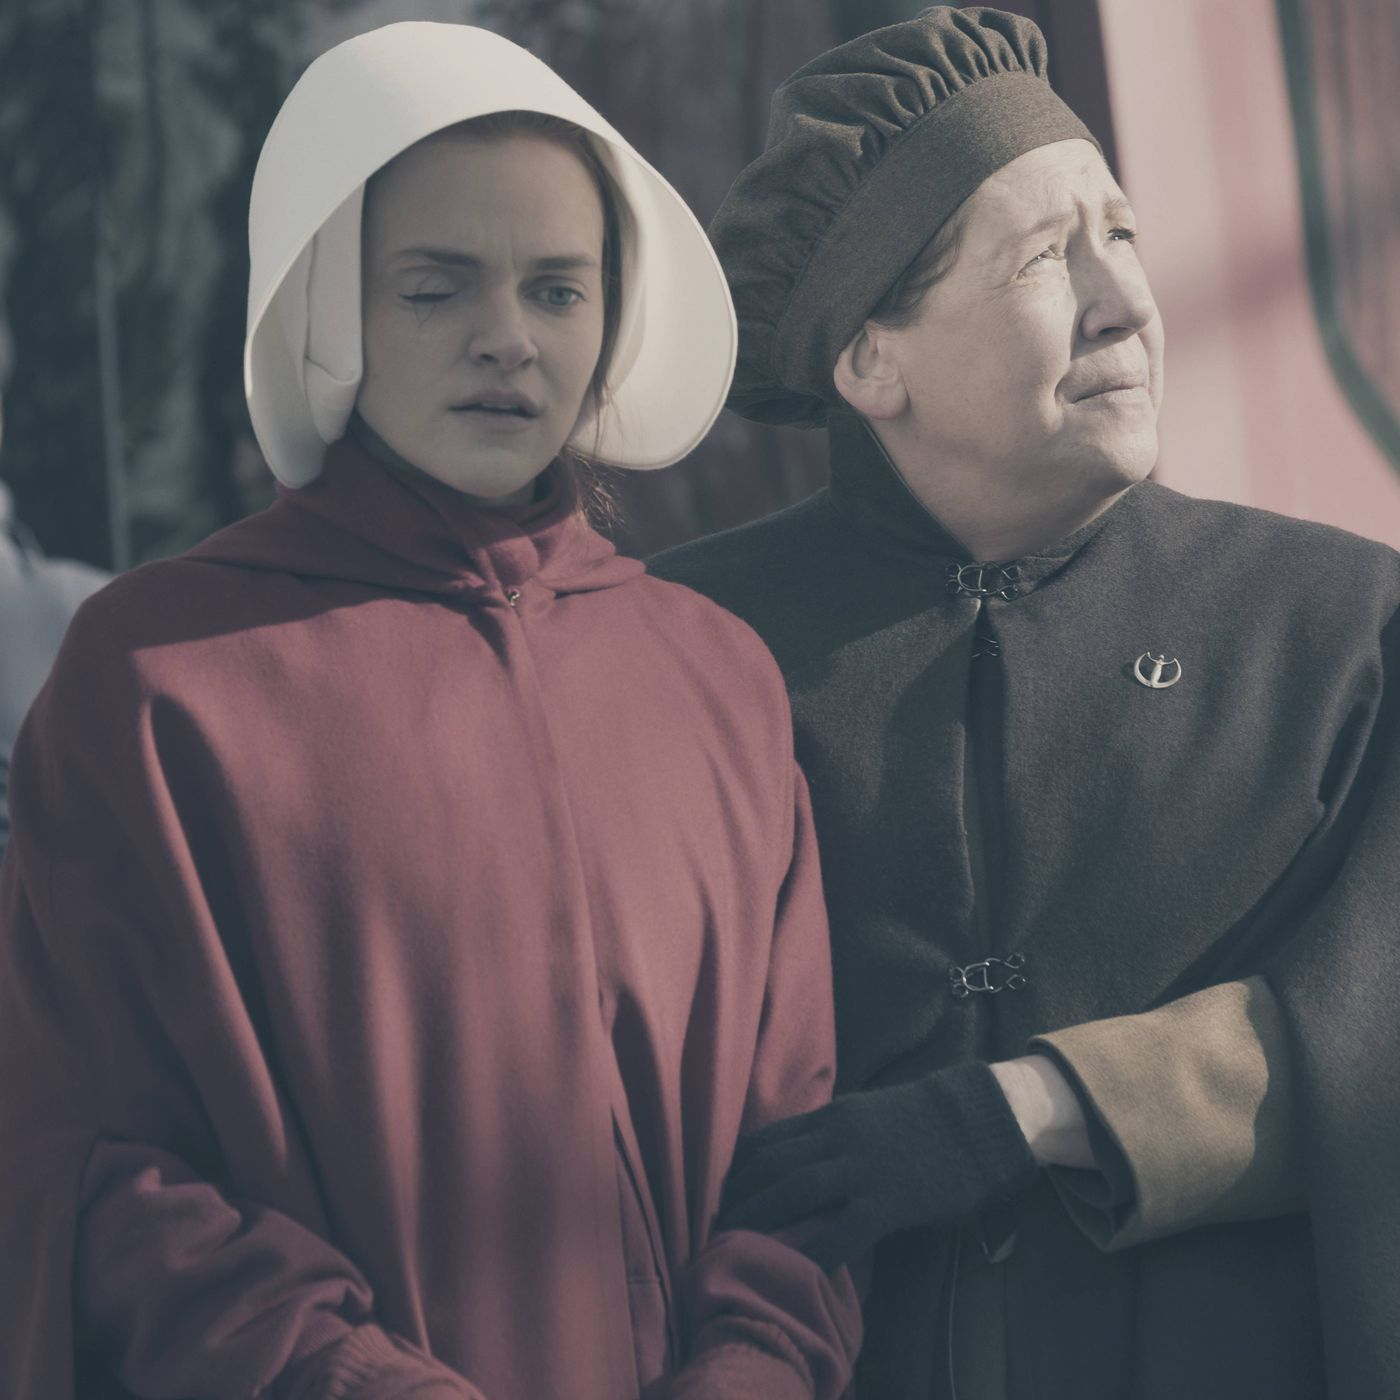 The Handmaid S Tale Season 1 Episode 9 The Bridge Stares Into The Face Of Death And Beyond Vox